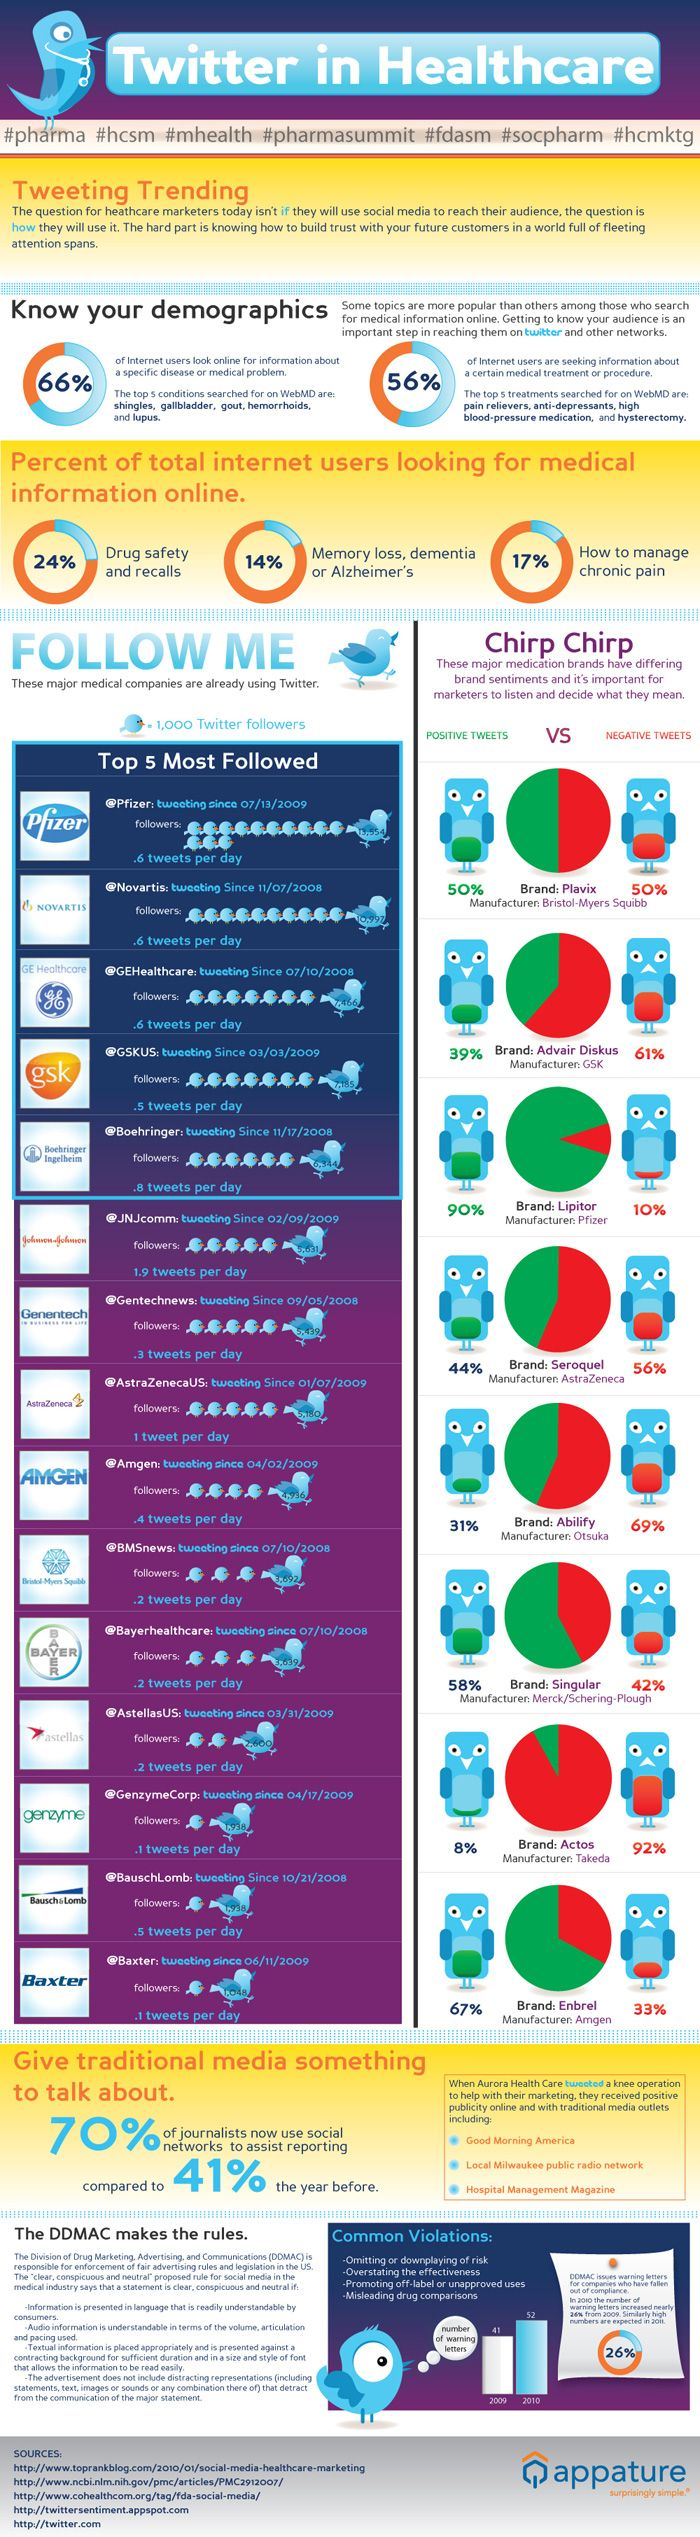 twitter-in-healthcare-infographic